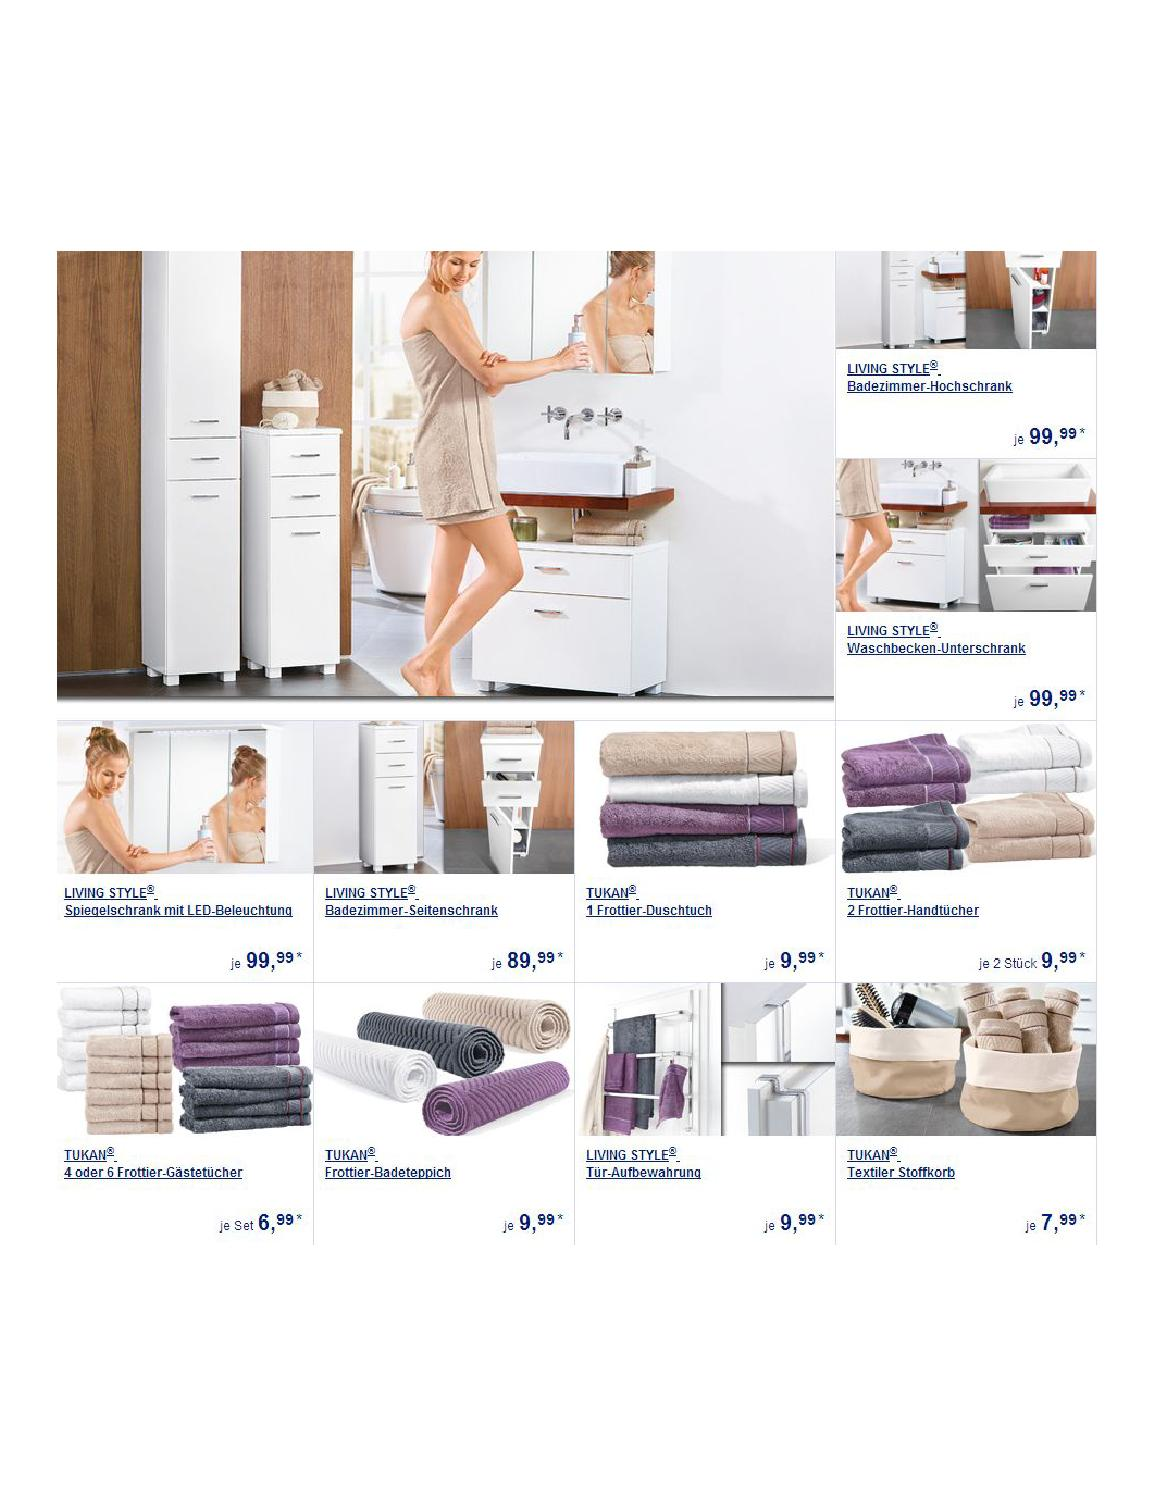 aldi sud katalog g ltig bis 12 08 by broshuri issuu. Black Bedroom Furniture Sets. Home Design Ideas